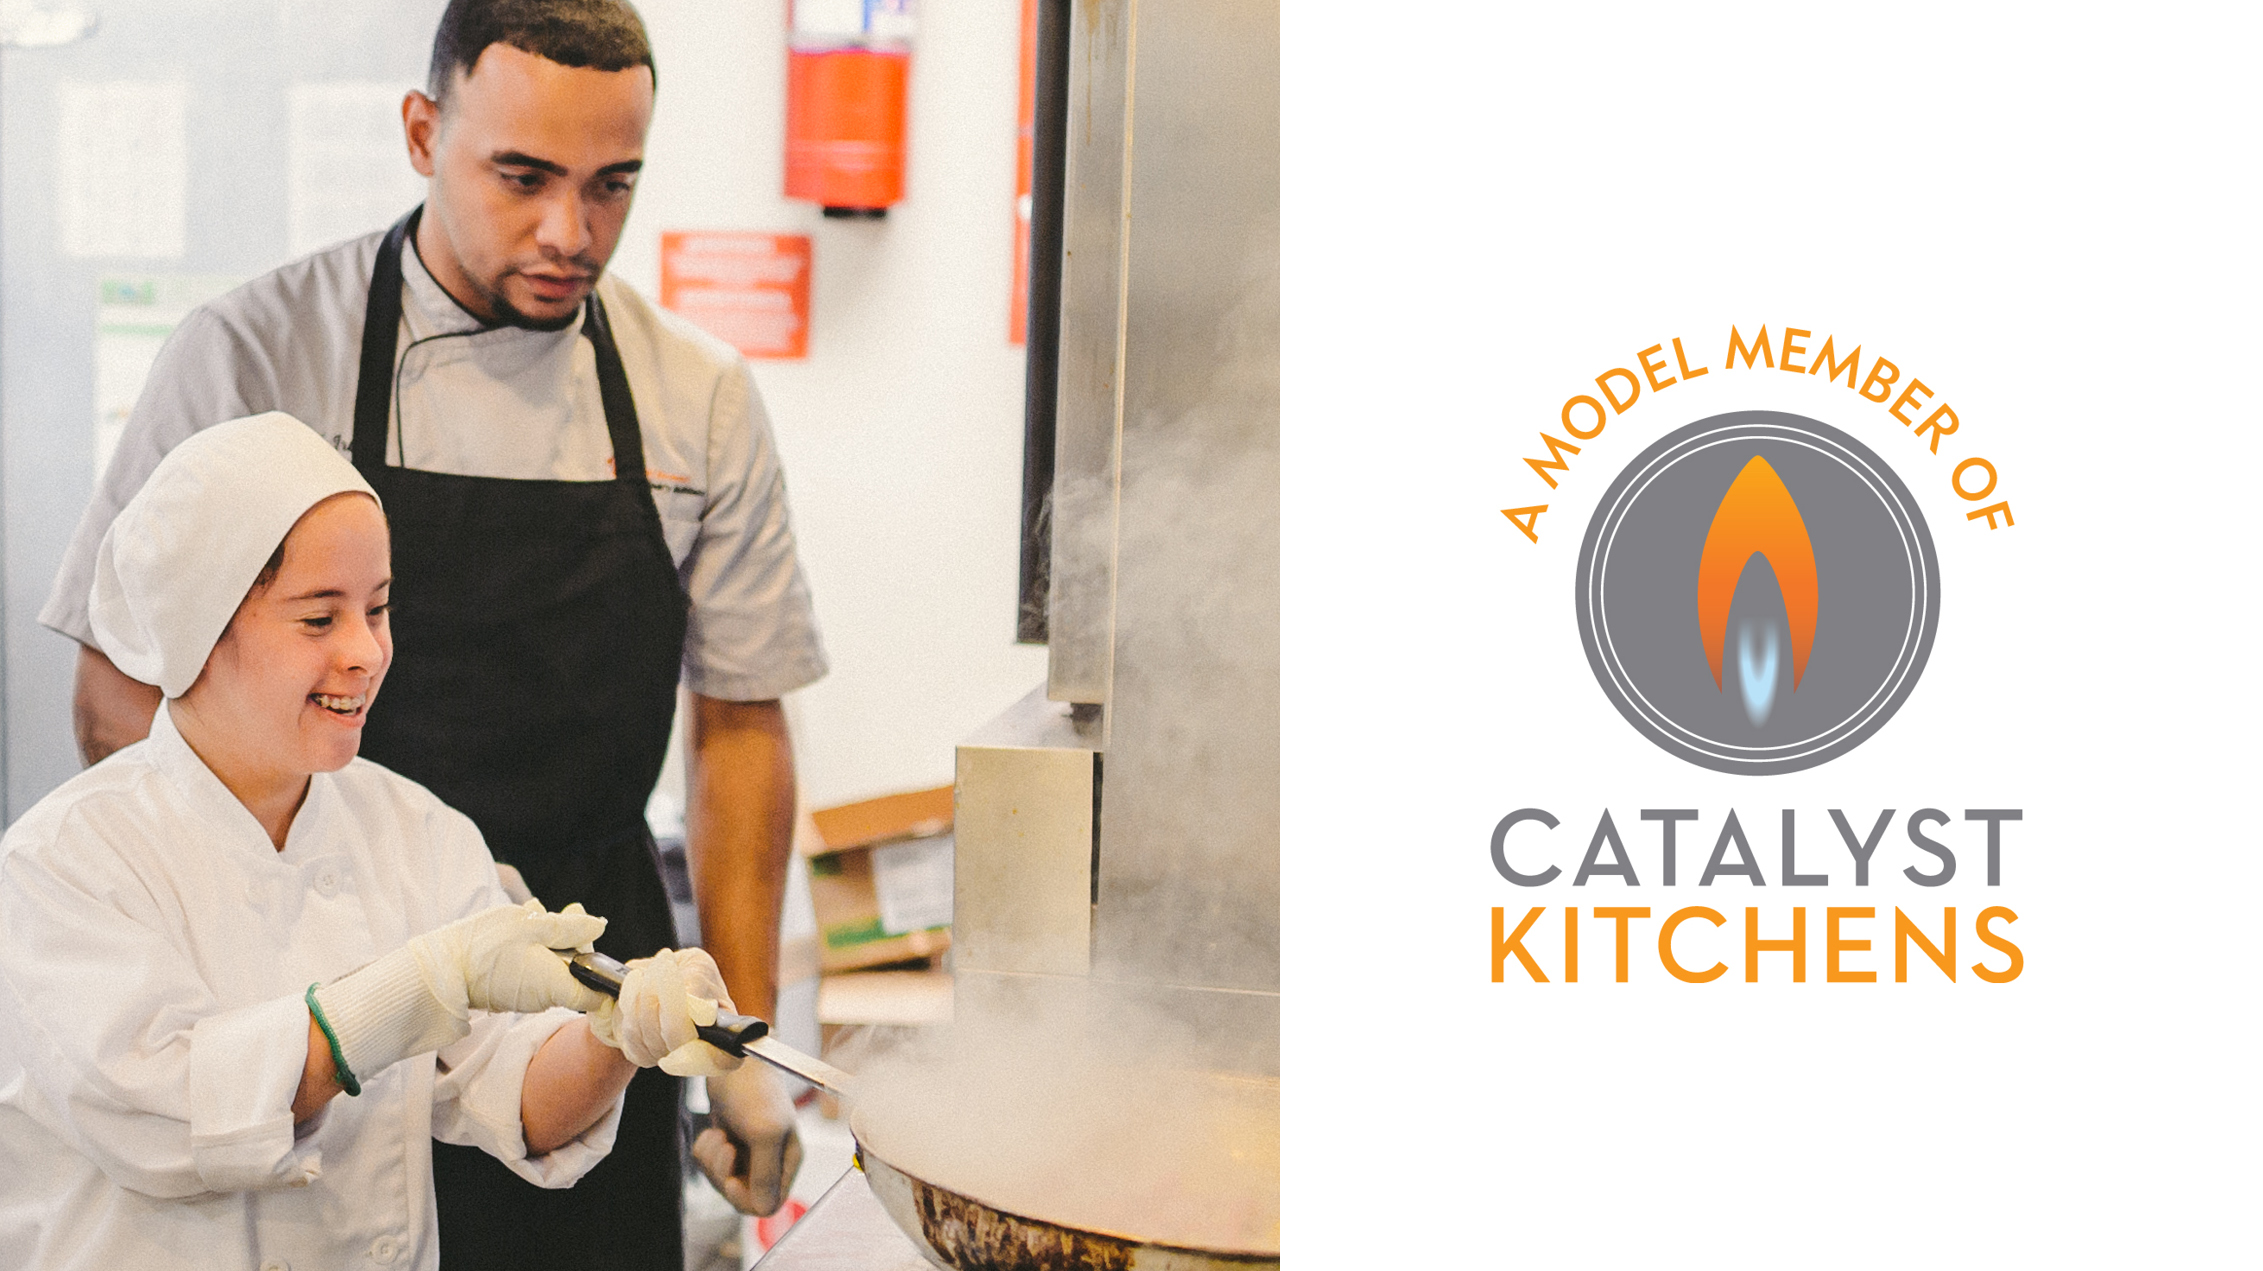 Catalyst_Kitchens_homepage_media_BNAPYTXQ.jpg